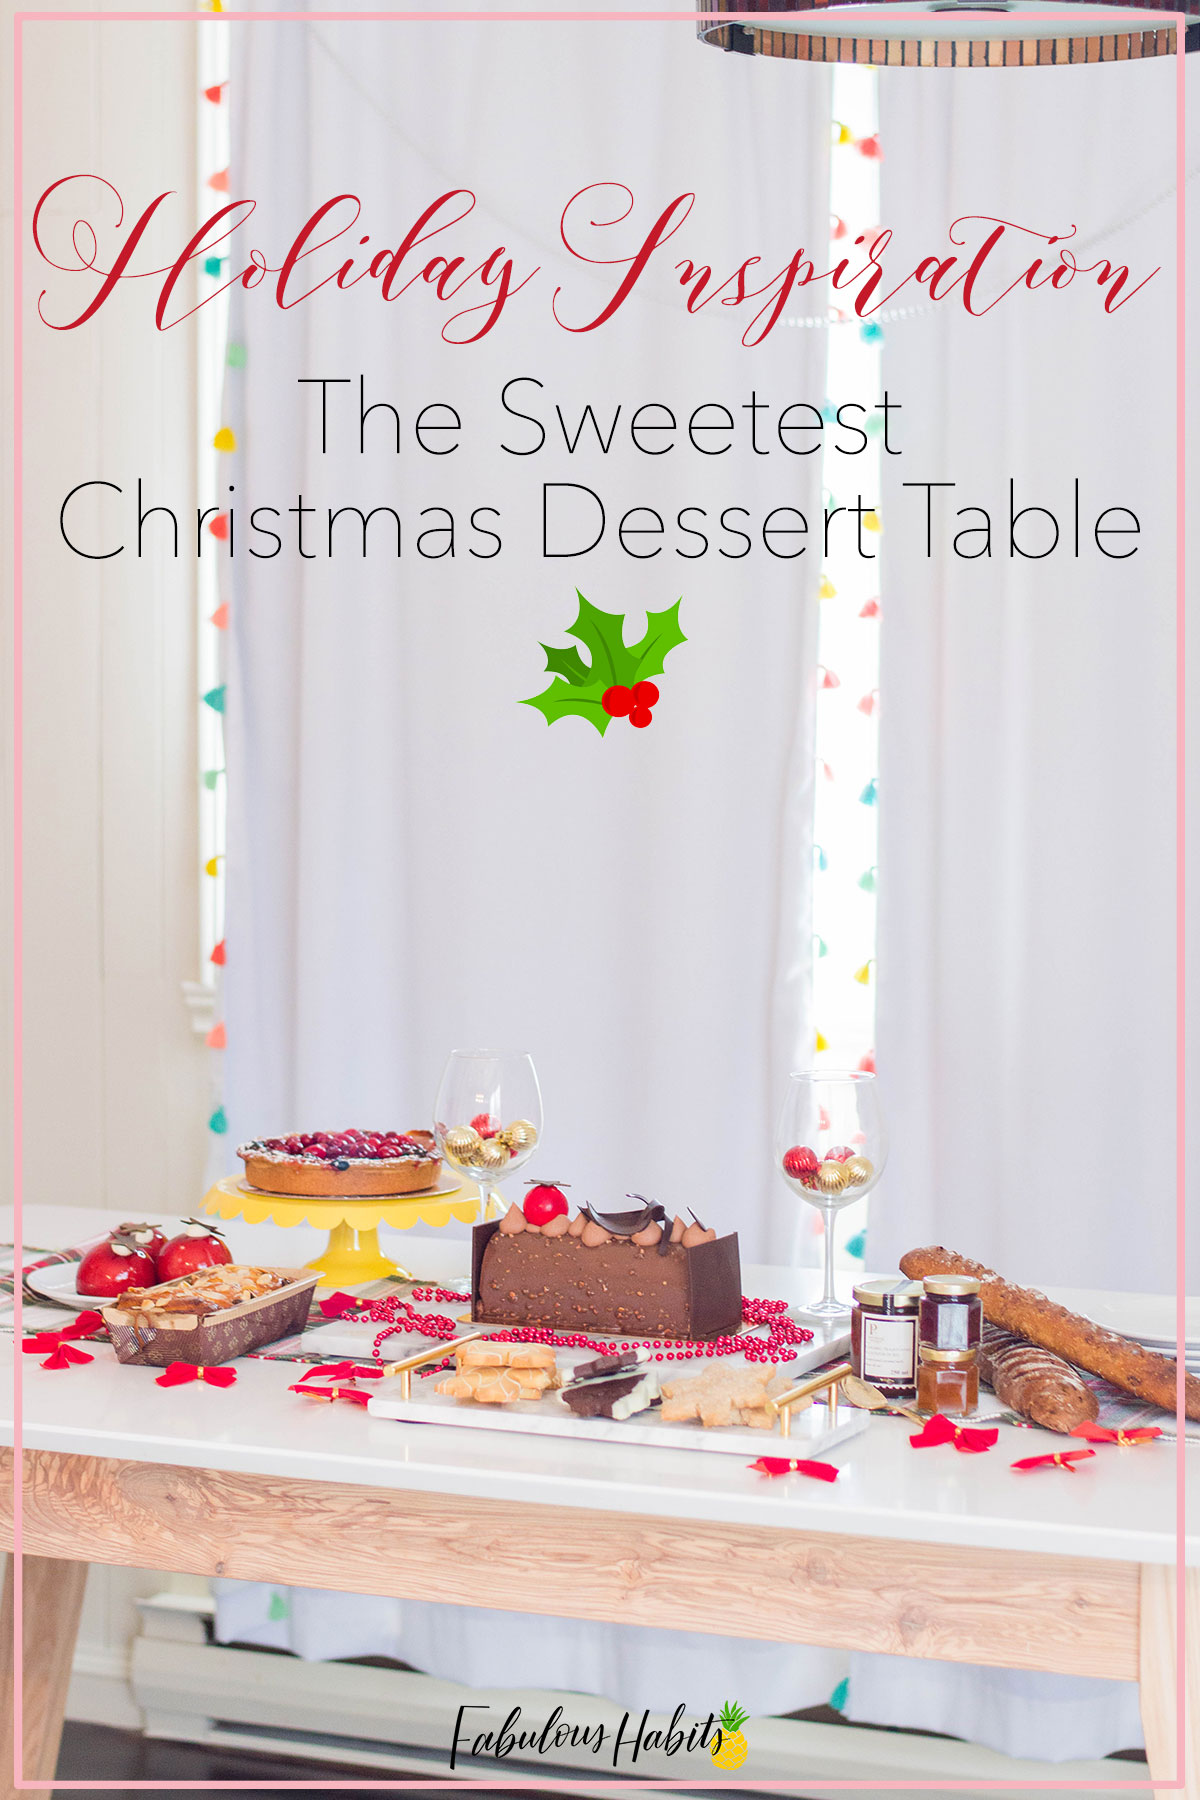 Holiday inspiration: how to put together the sweetest Christmas dessert table. Impress your guests with our simple tips! #holidayparty